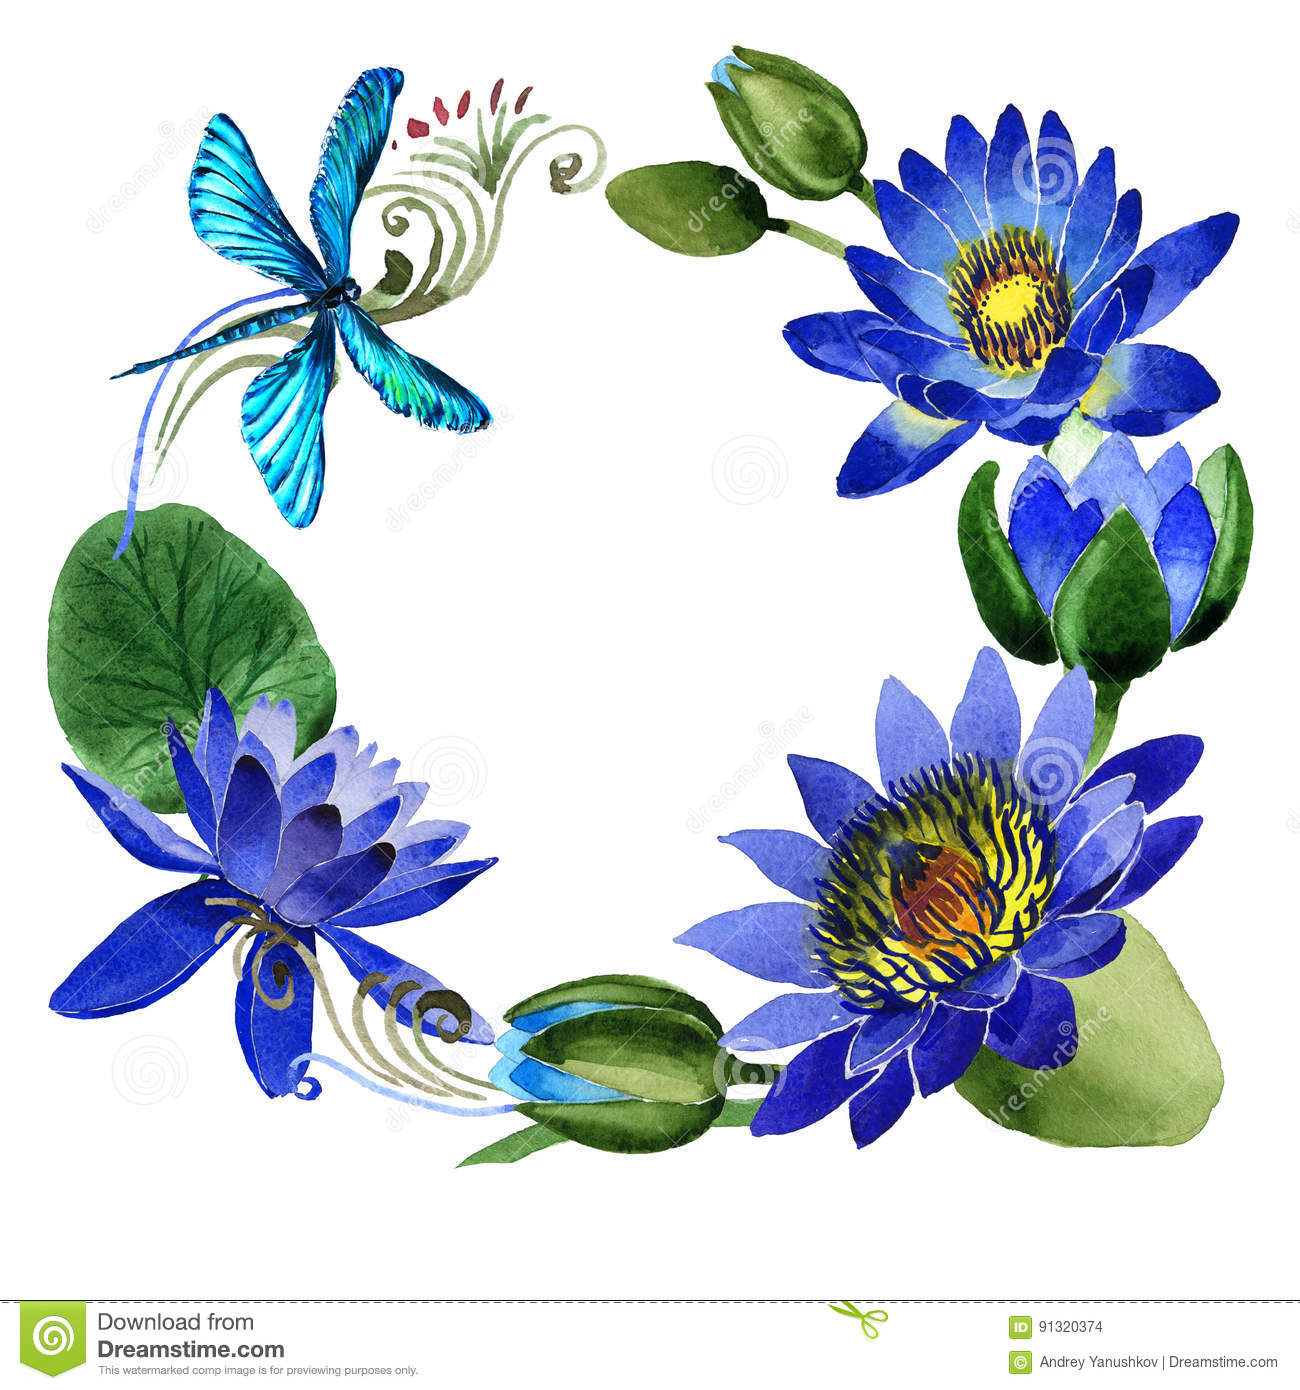 Wildflower blue lotus flower frame in a watercolor style isolated download wildflower blue lotus flower frame in a watercolor style isolated stock illustration illustration izmirmasajfo